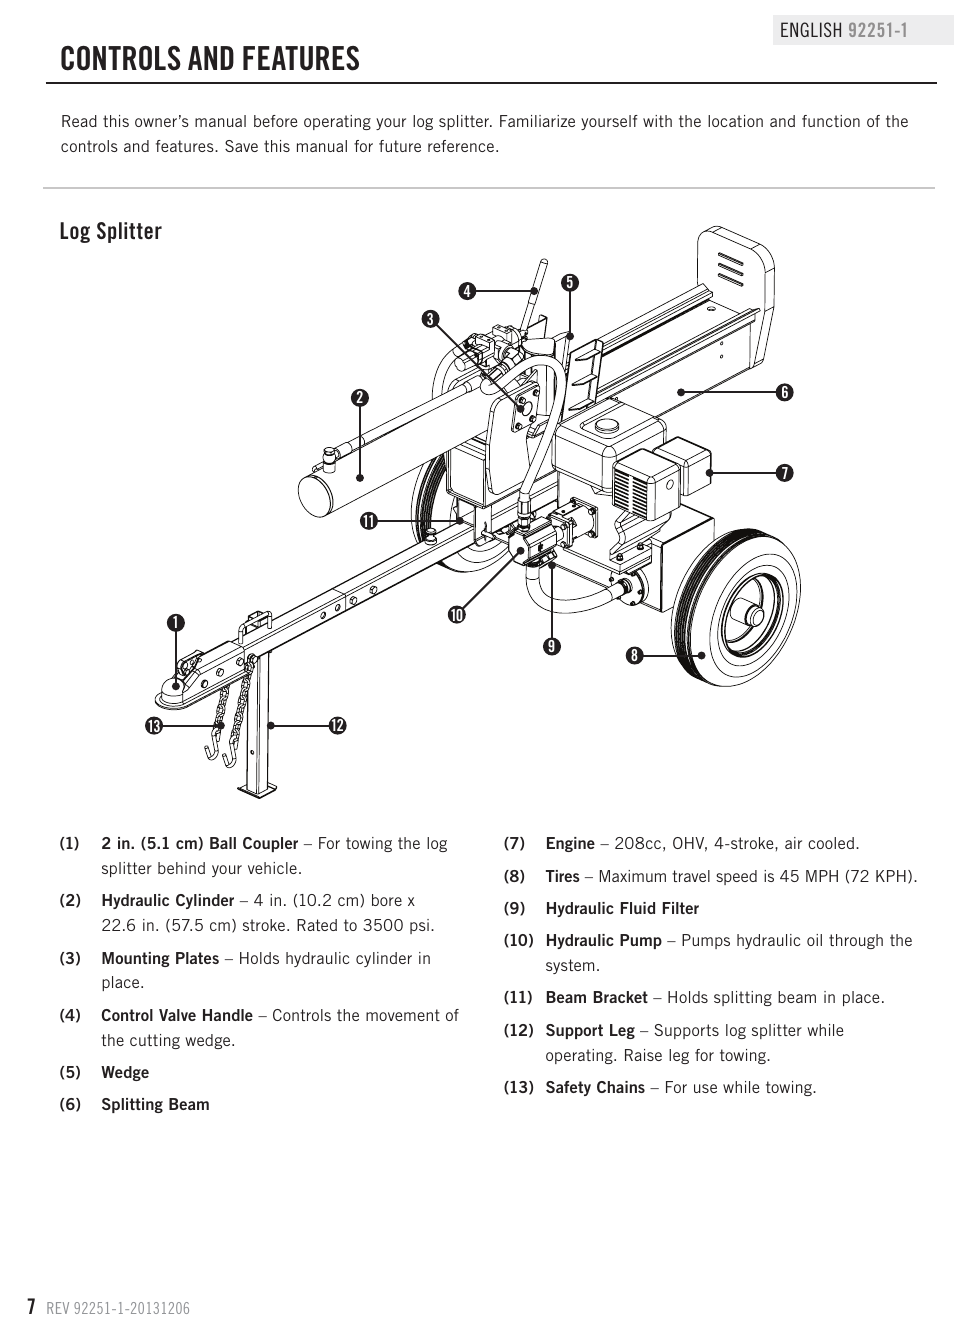 Controls And Features Log Splitter Champion Power Equipment 92251 8 Cylinder Ohv Engine Diagram 1 User Manual Page 10 31